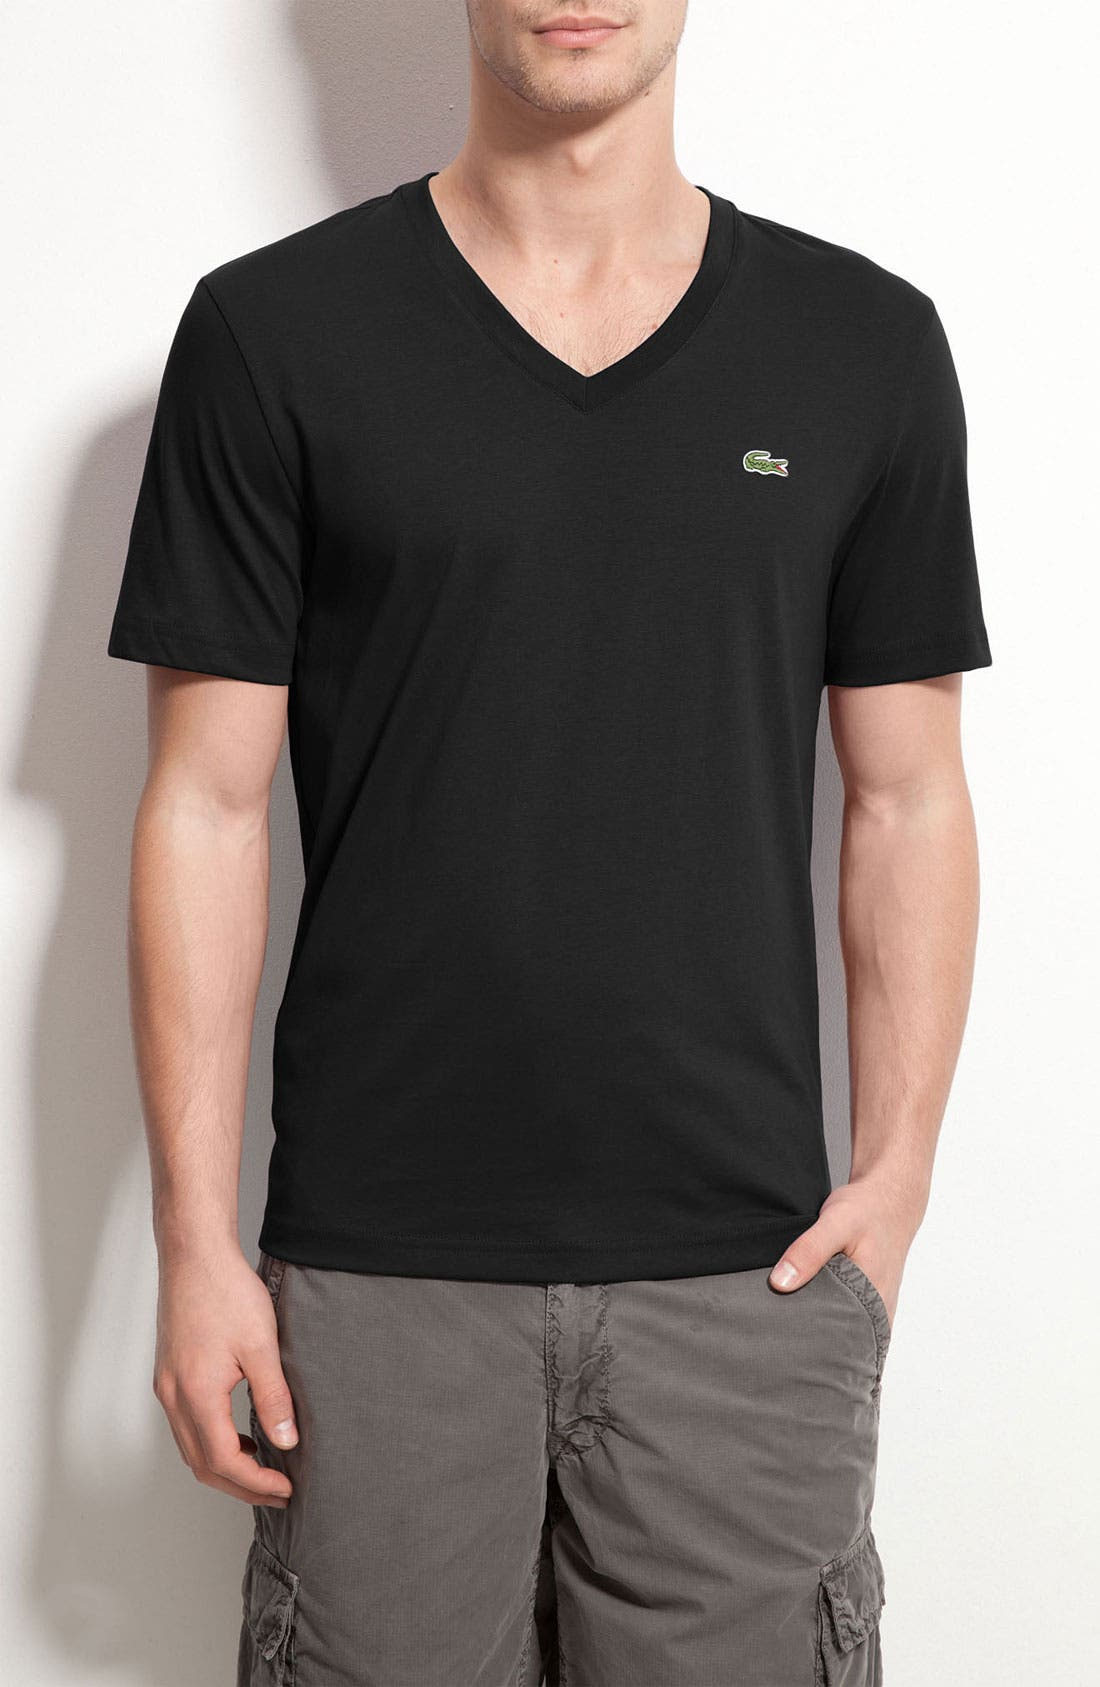 Alternate Image 1 Selected - Lacoste L!VE Trim Fit Jersey V-Neck T-Shirt